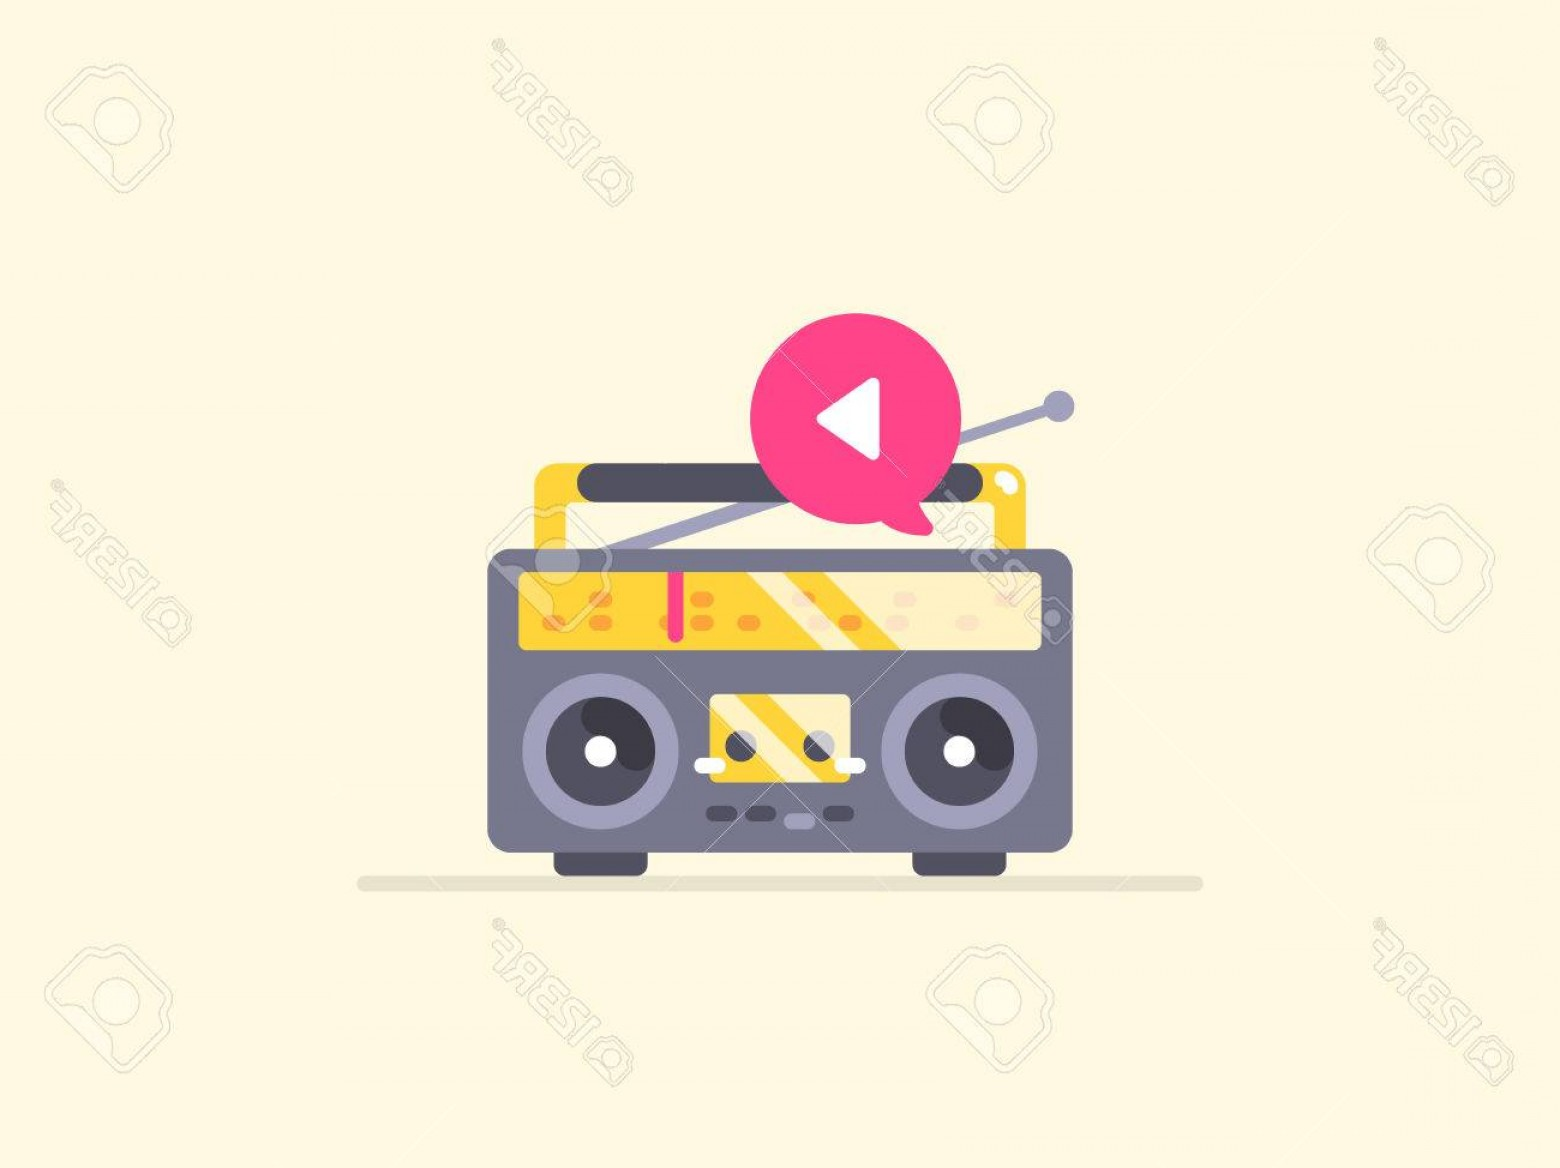 Music Vector Content: Photostock Vector Boombox Stereo Icon Icon For Music Playback Podcast And Other Audio Content Content